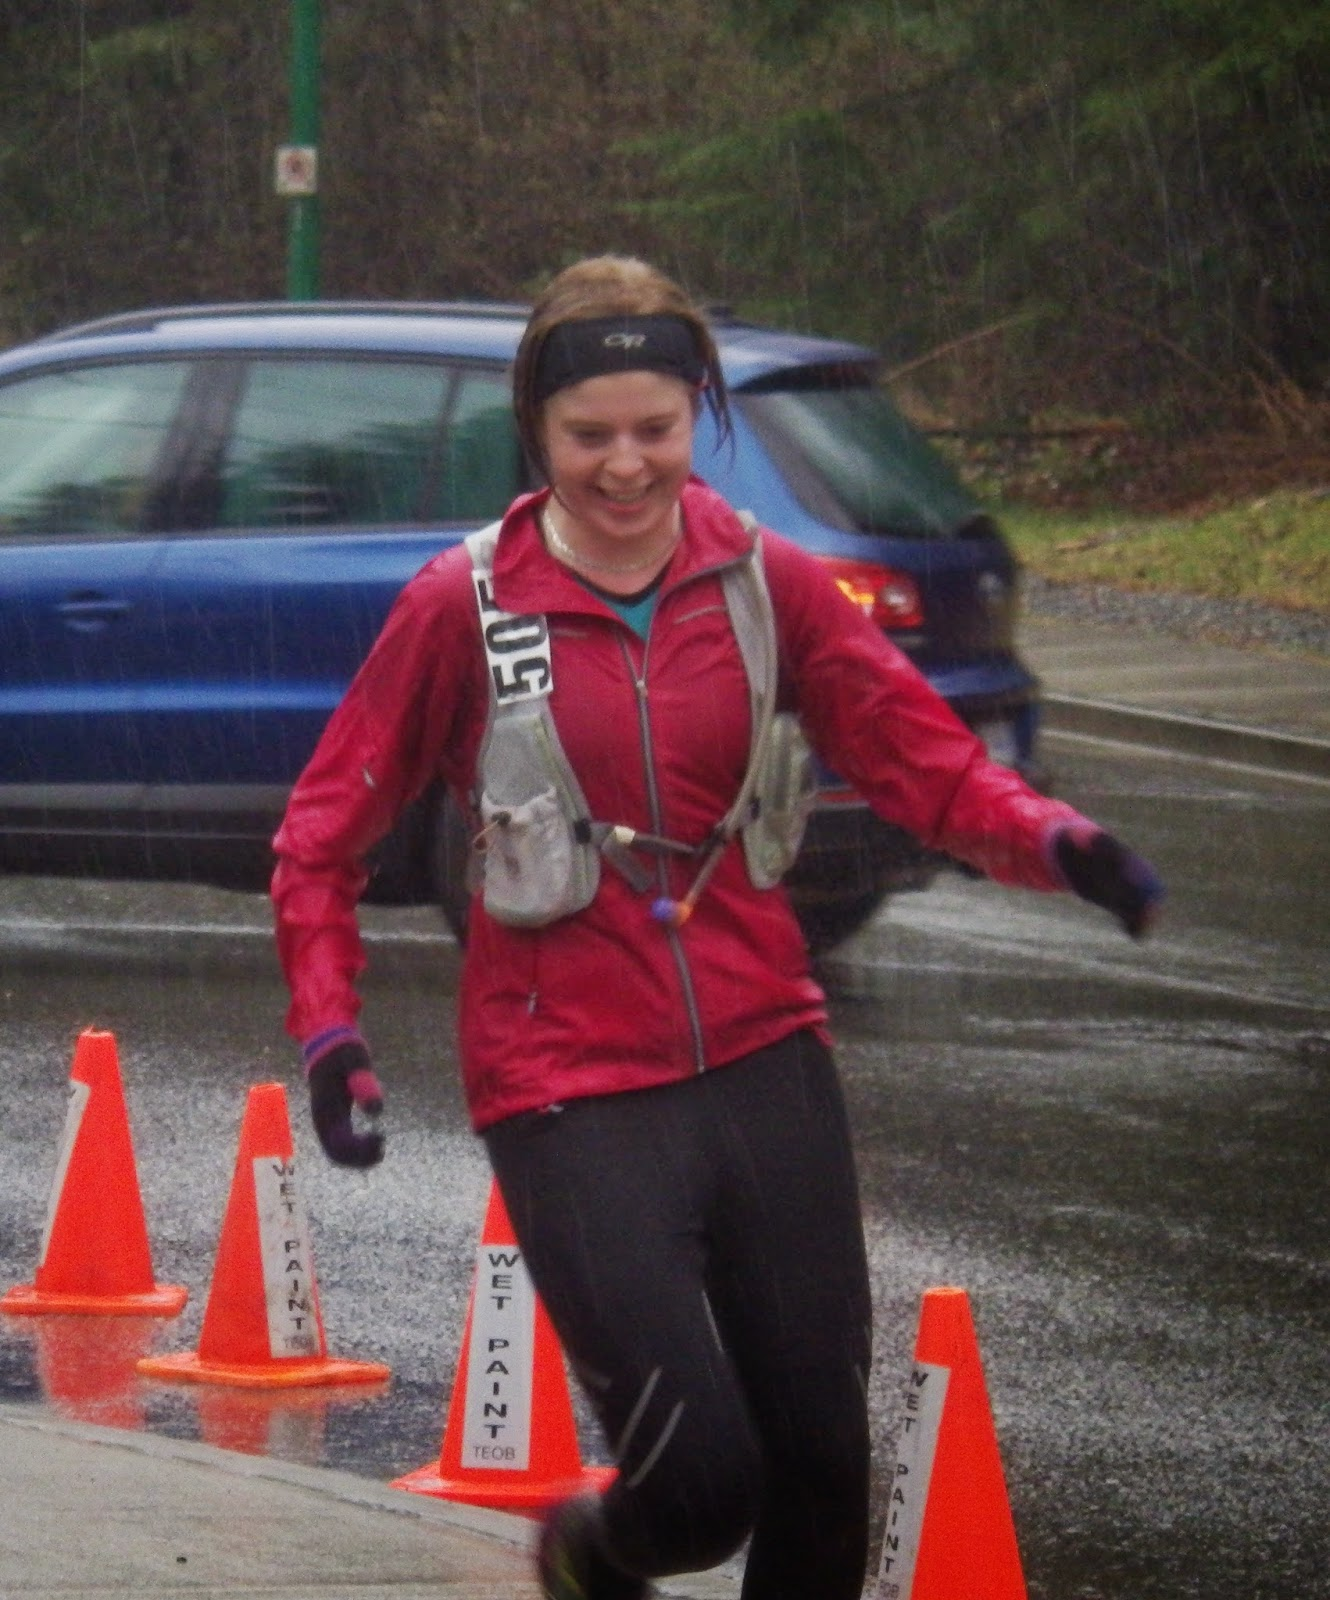 Trail Effect Blog: Jenna Bowling finishing the Dirty Duo 50km Ultra